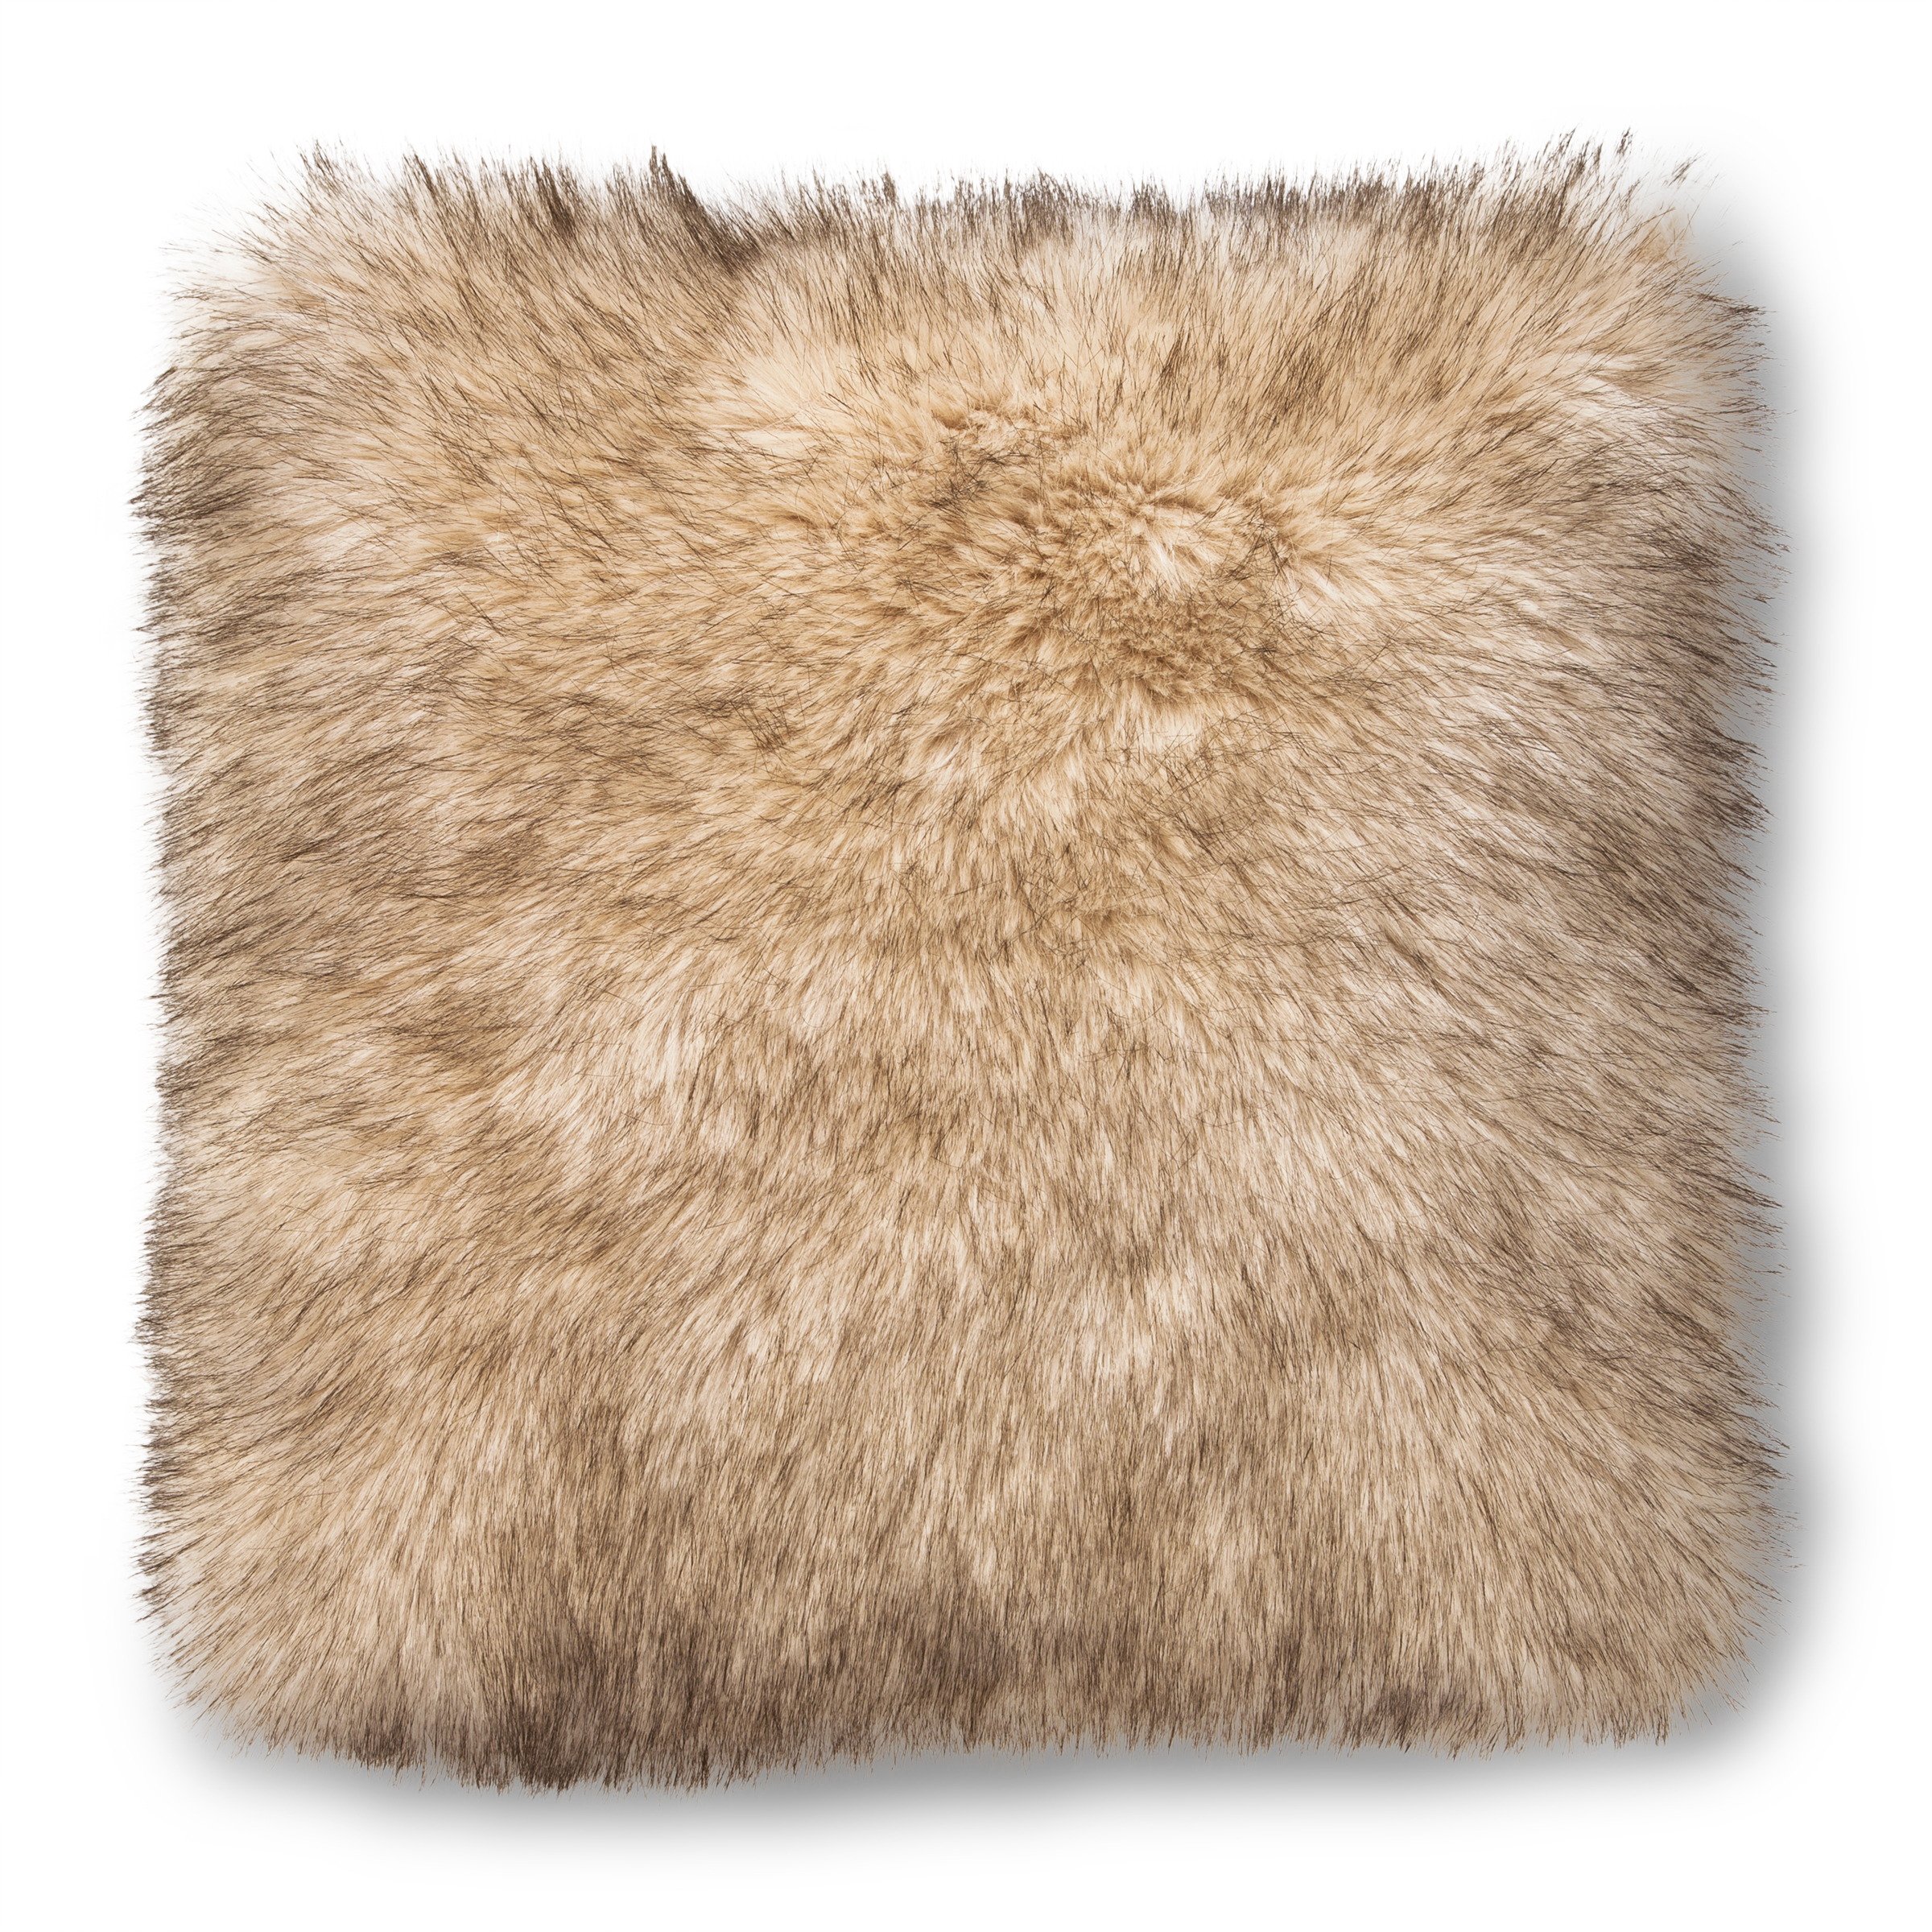 cushion faux people products scarlet scar fur pillow mangopeopleshop mango mongolian